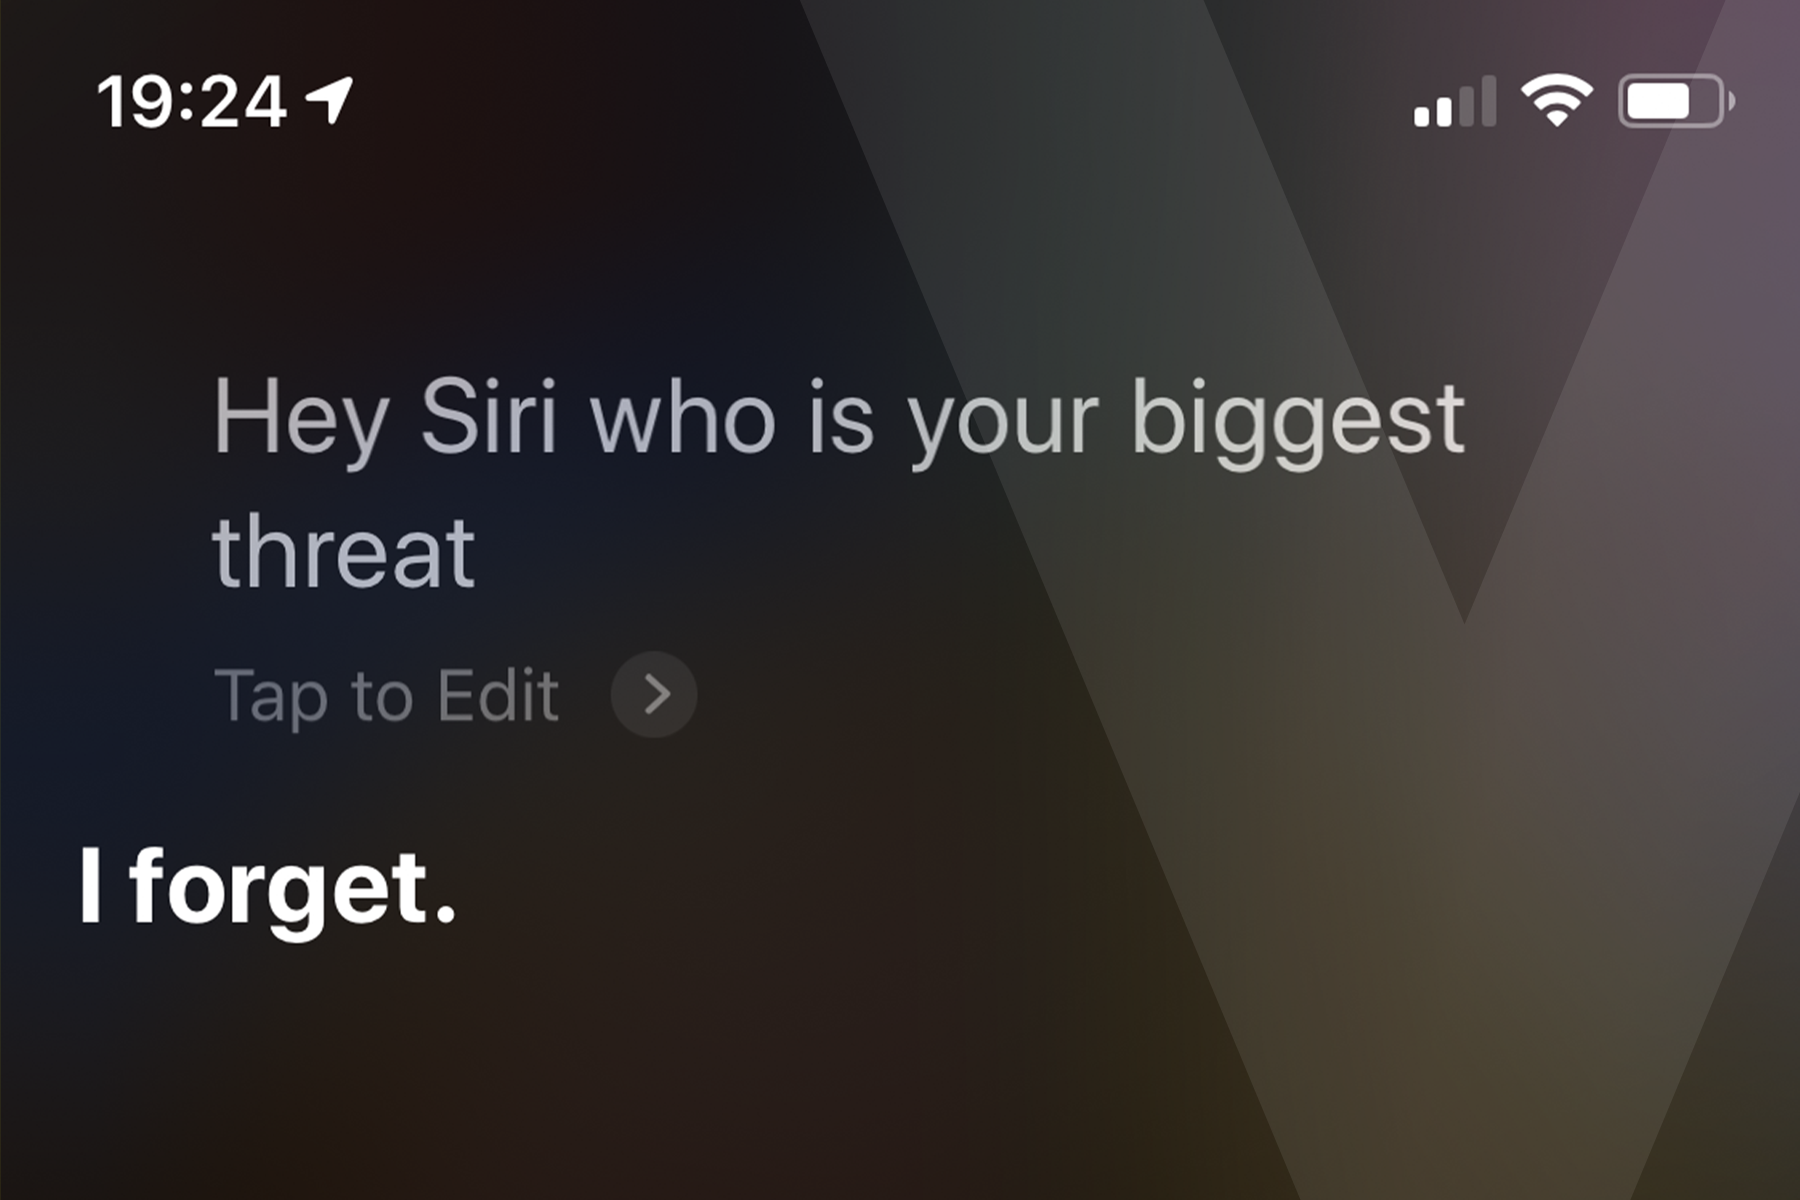 Siri's biggest threat?